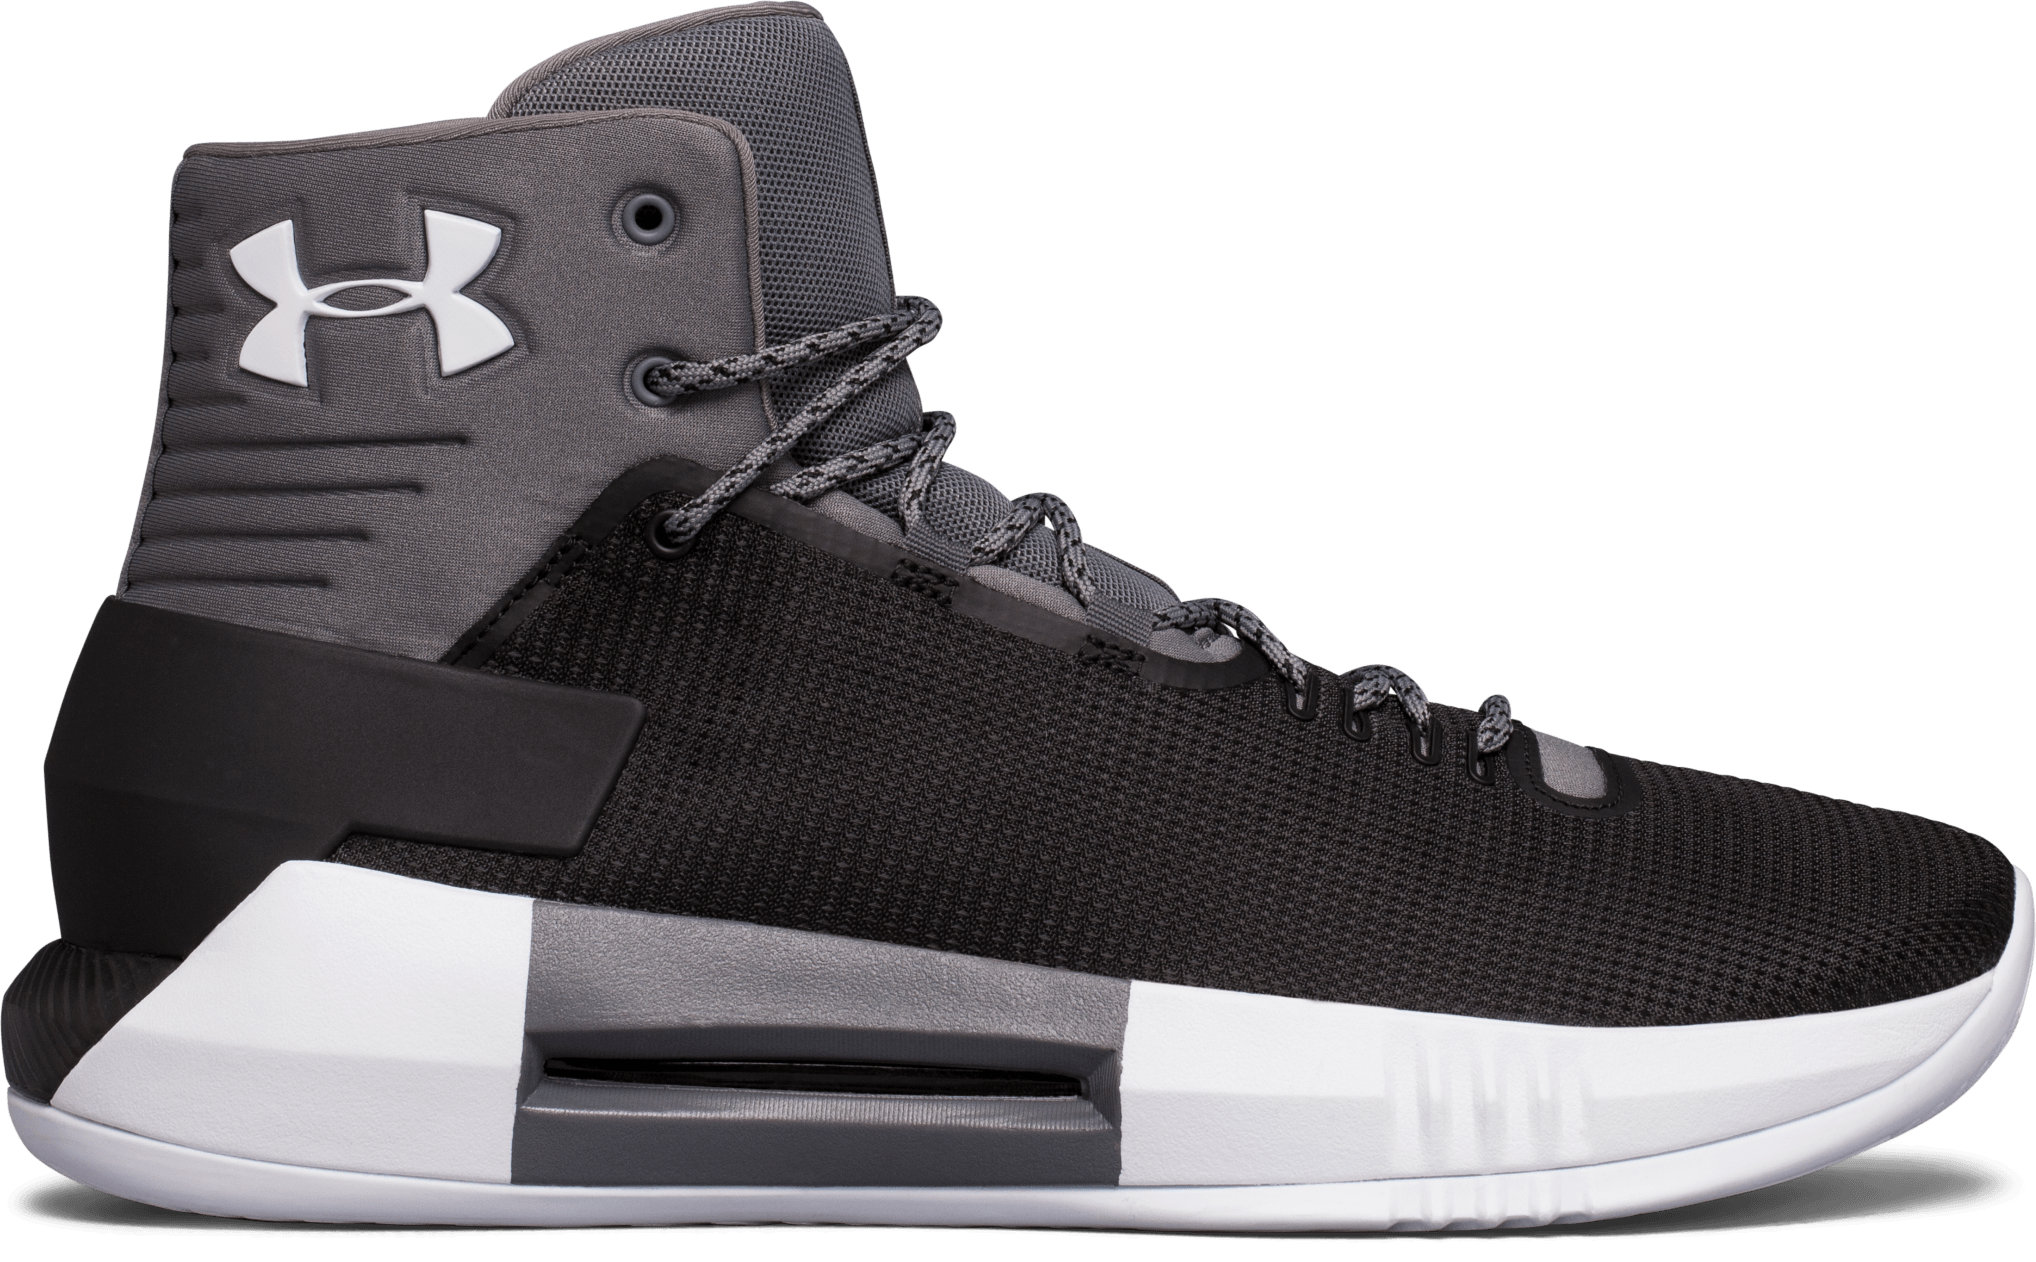 Under Armour Drive 4 Performance Review